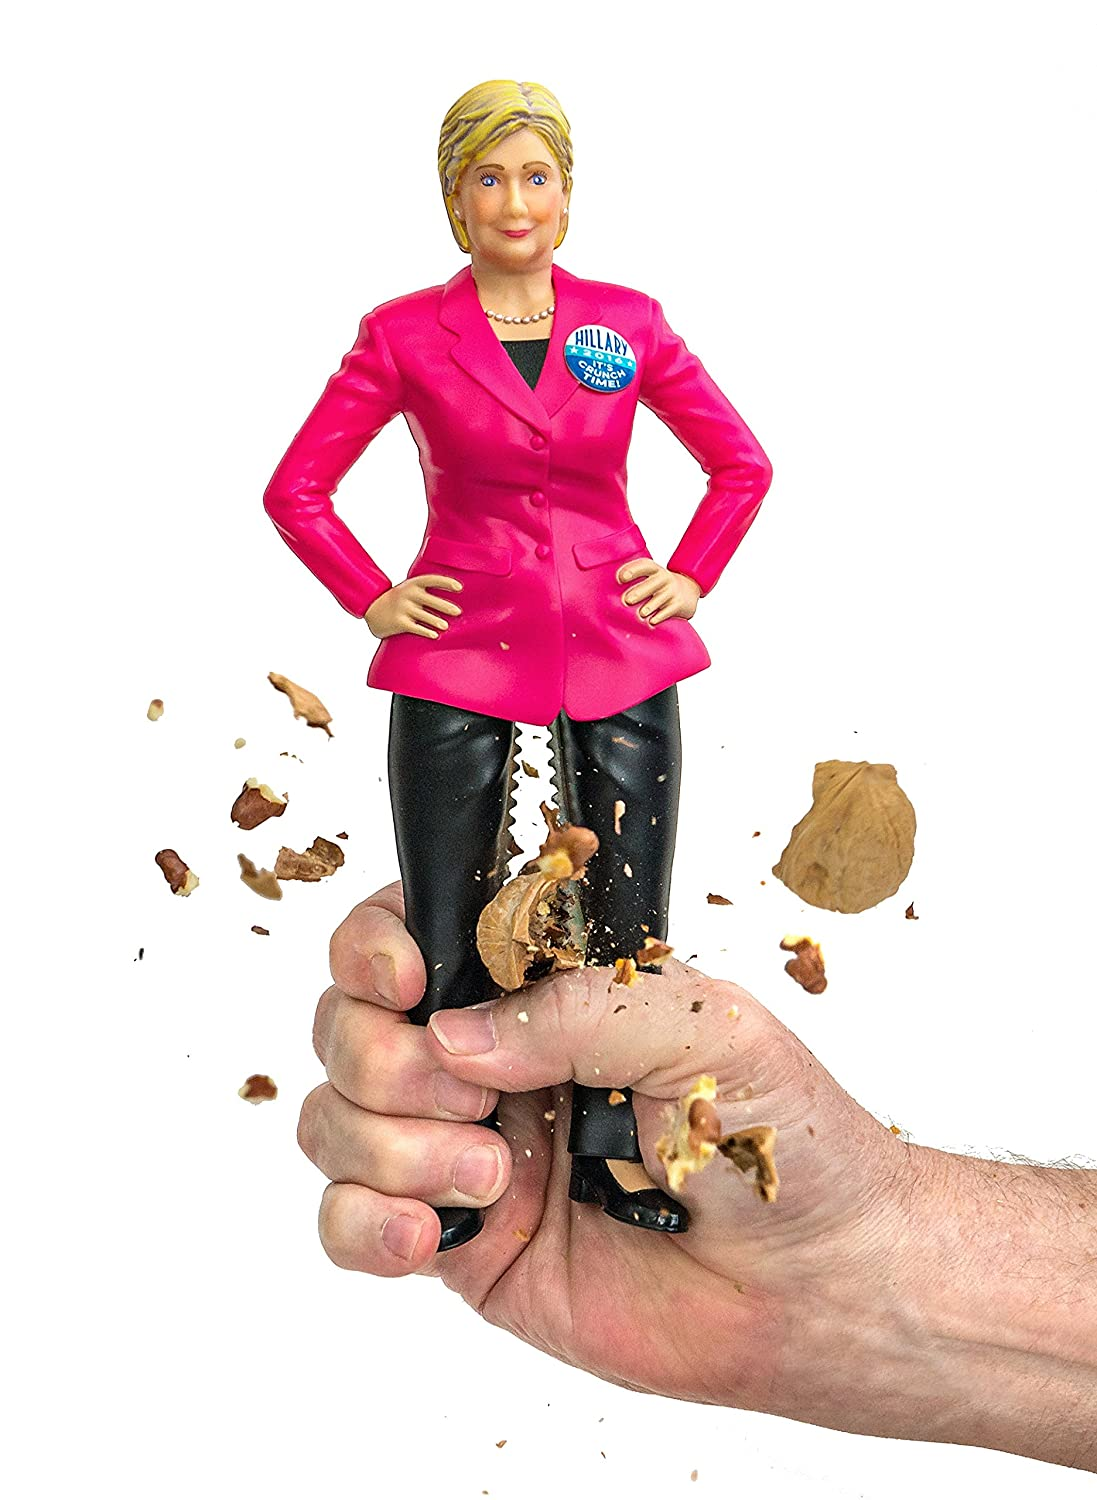 Damn Handy Products The Hillary Nutcracker with Stainless Steel Thighs and the Popular Vote 2016